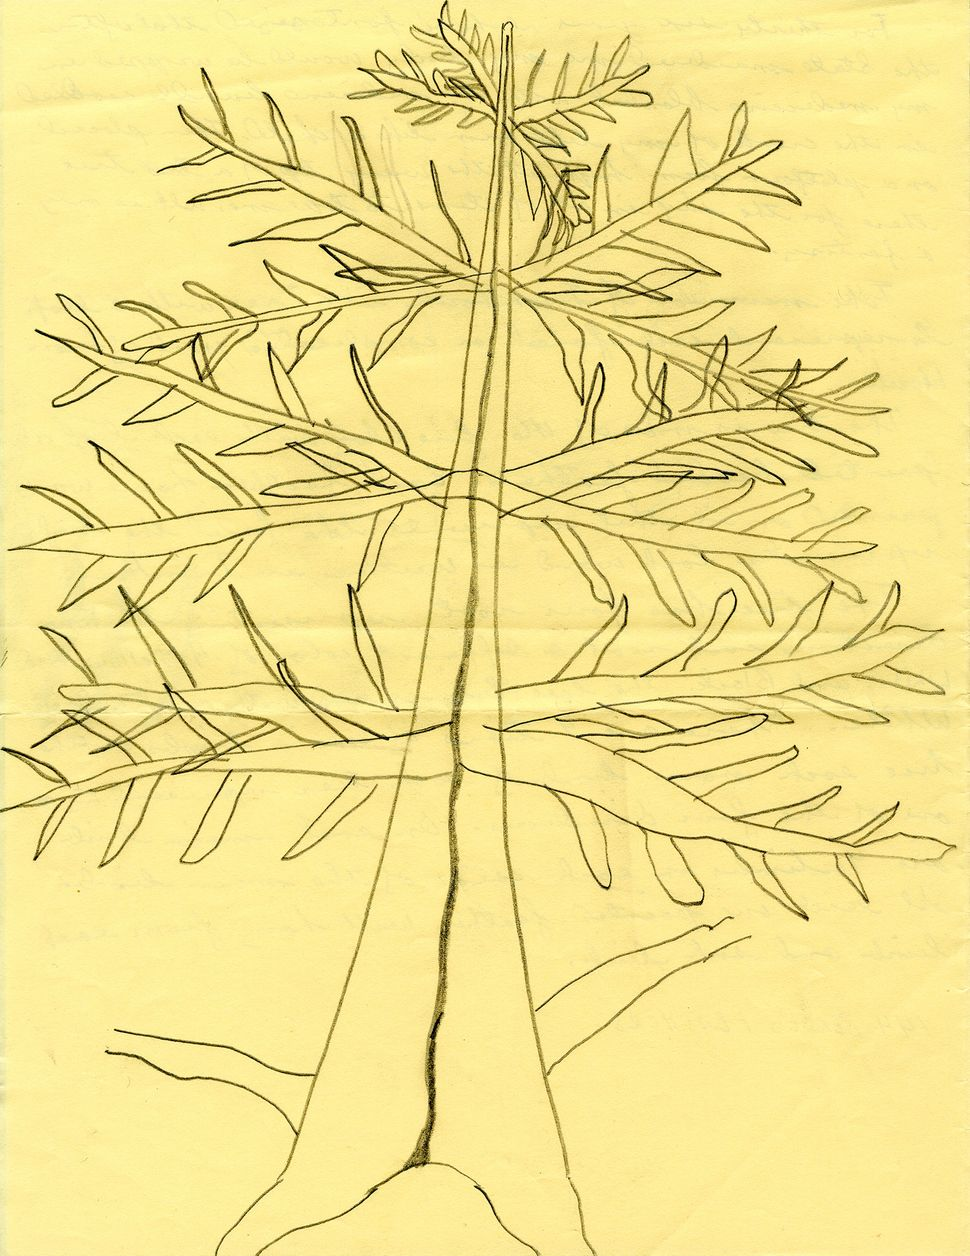 Drawing for a Tree, 2015, Pencil on paper